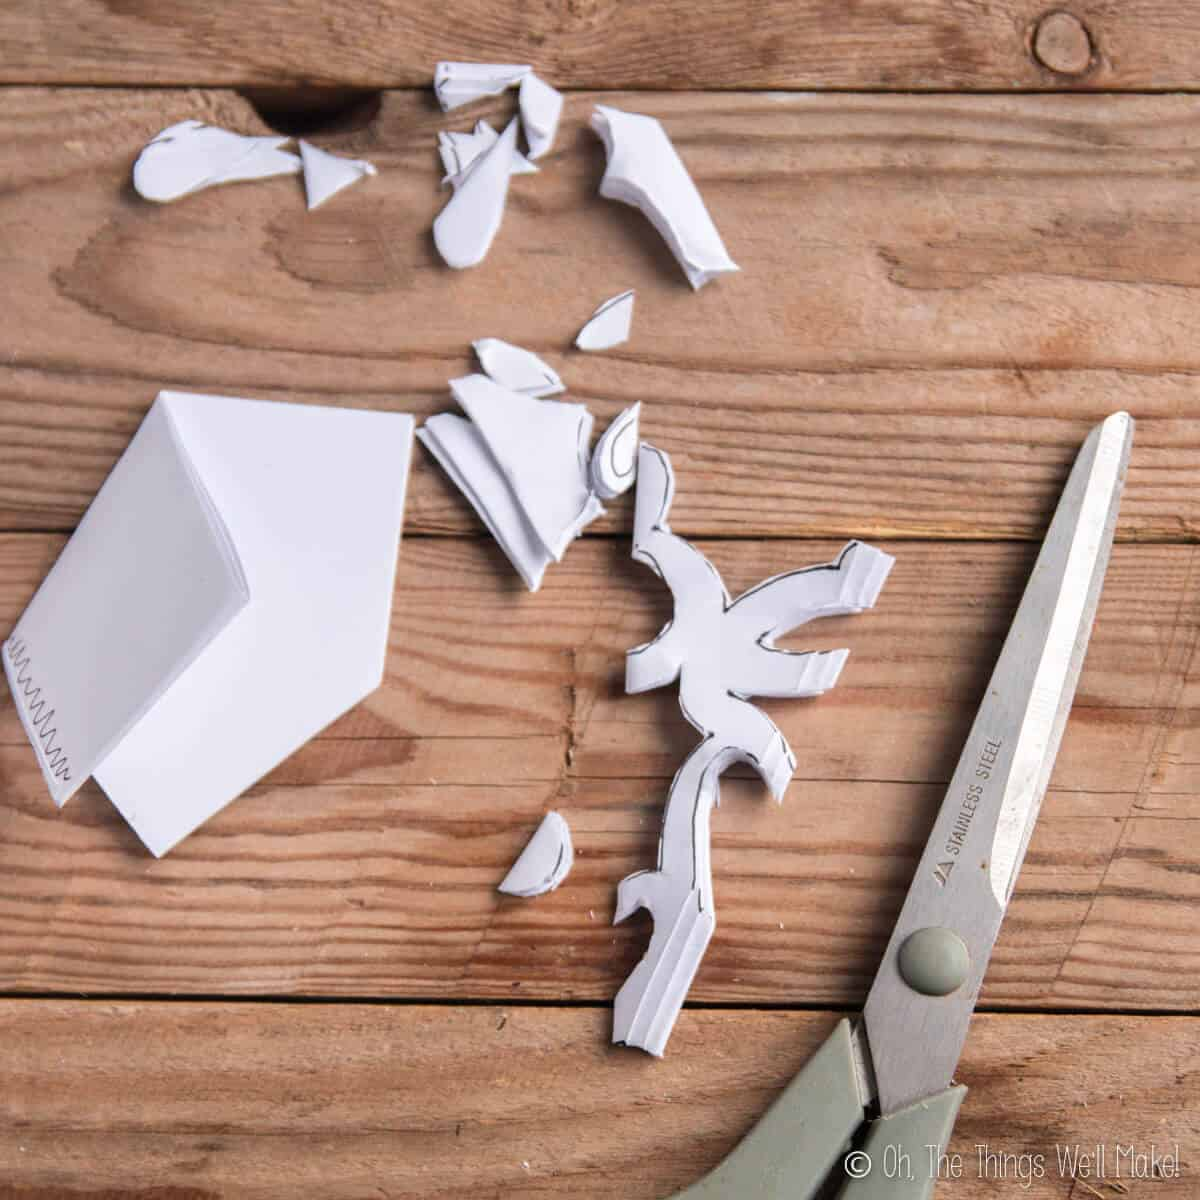 A paper snowflake being cut out from a folded piece of paper.